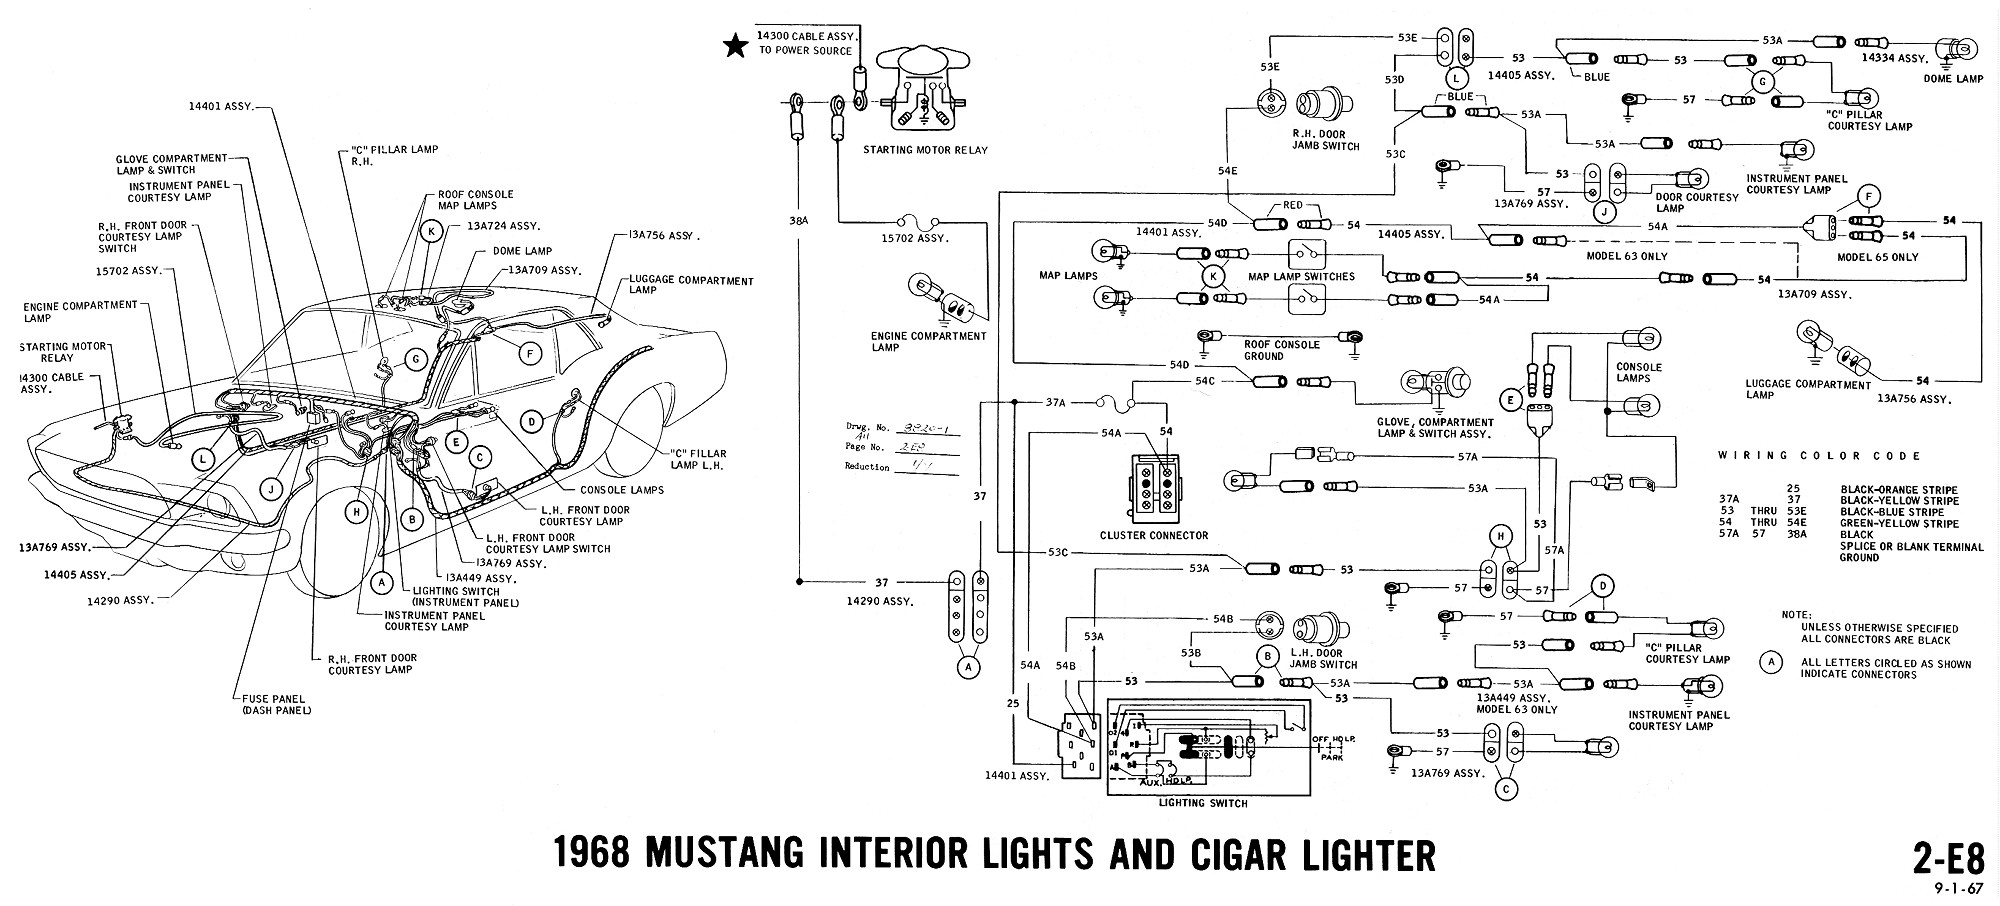 Mach 1 Wiring Diagram - Auto Electrical Wiring Diagram Rolls Royce Ignition Wiring Diagrams on rolls royce blueprints, rolls royce rear suspension, rolls royce owners manual, rolls royce parts catalogs, rolls royce brochures, rolls royce seats, rolls royce brakes, rolls royce all models, rolls royce wiring harness, rolls royce color codes, rolls royce spare parts, rolls royce alternator wiring,